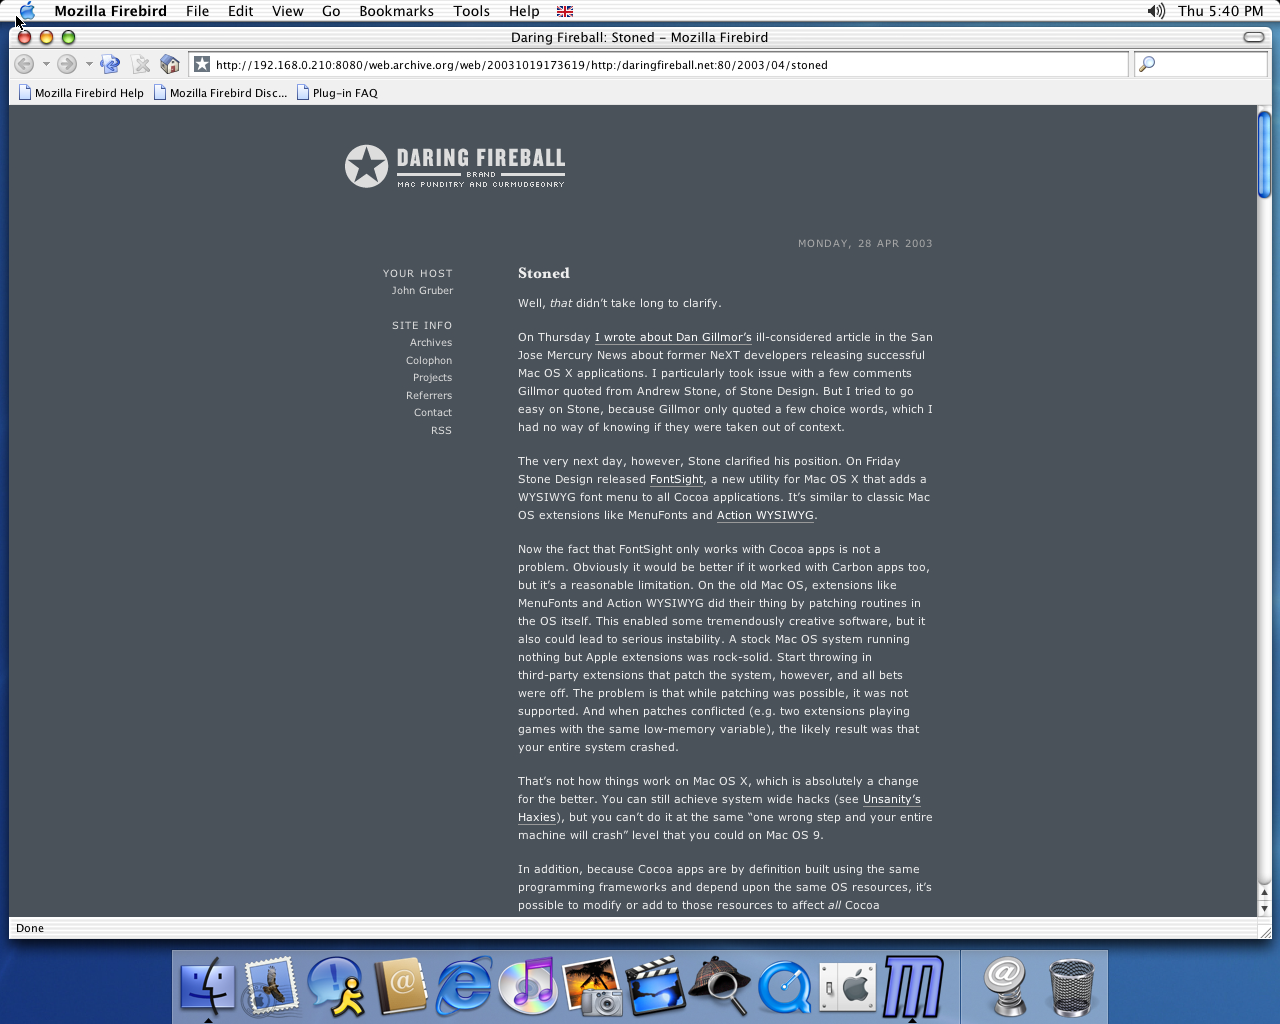 OS X 10.2 PPC with Firebird 0.6 displaying a page from Daring Fireball archived at October 19, 2003 at 17:36:19